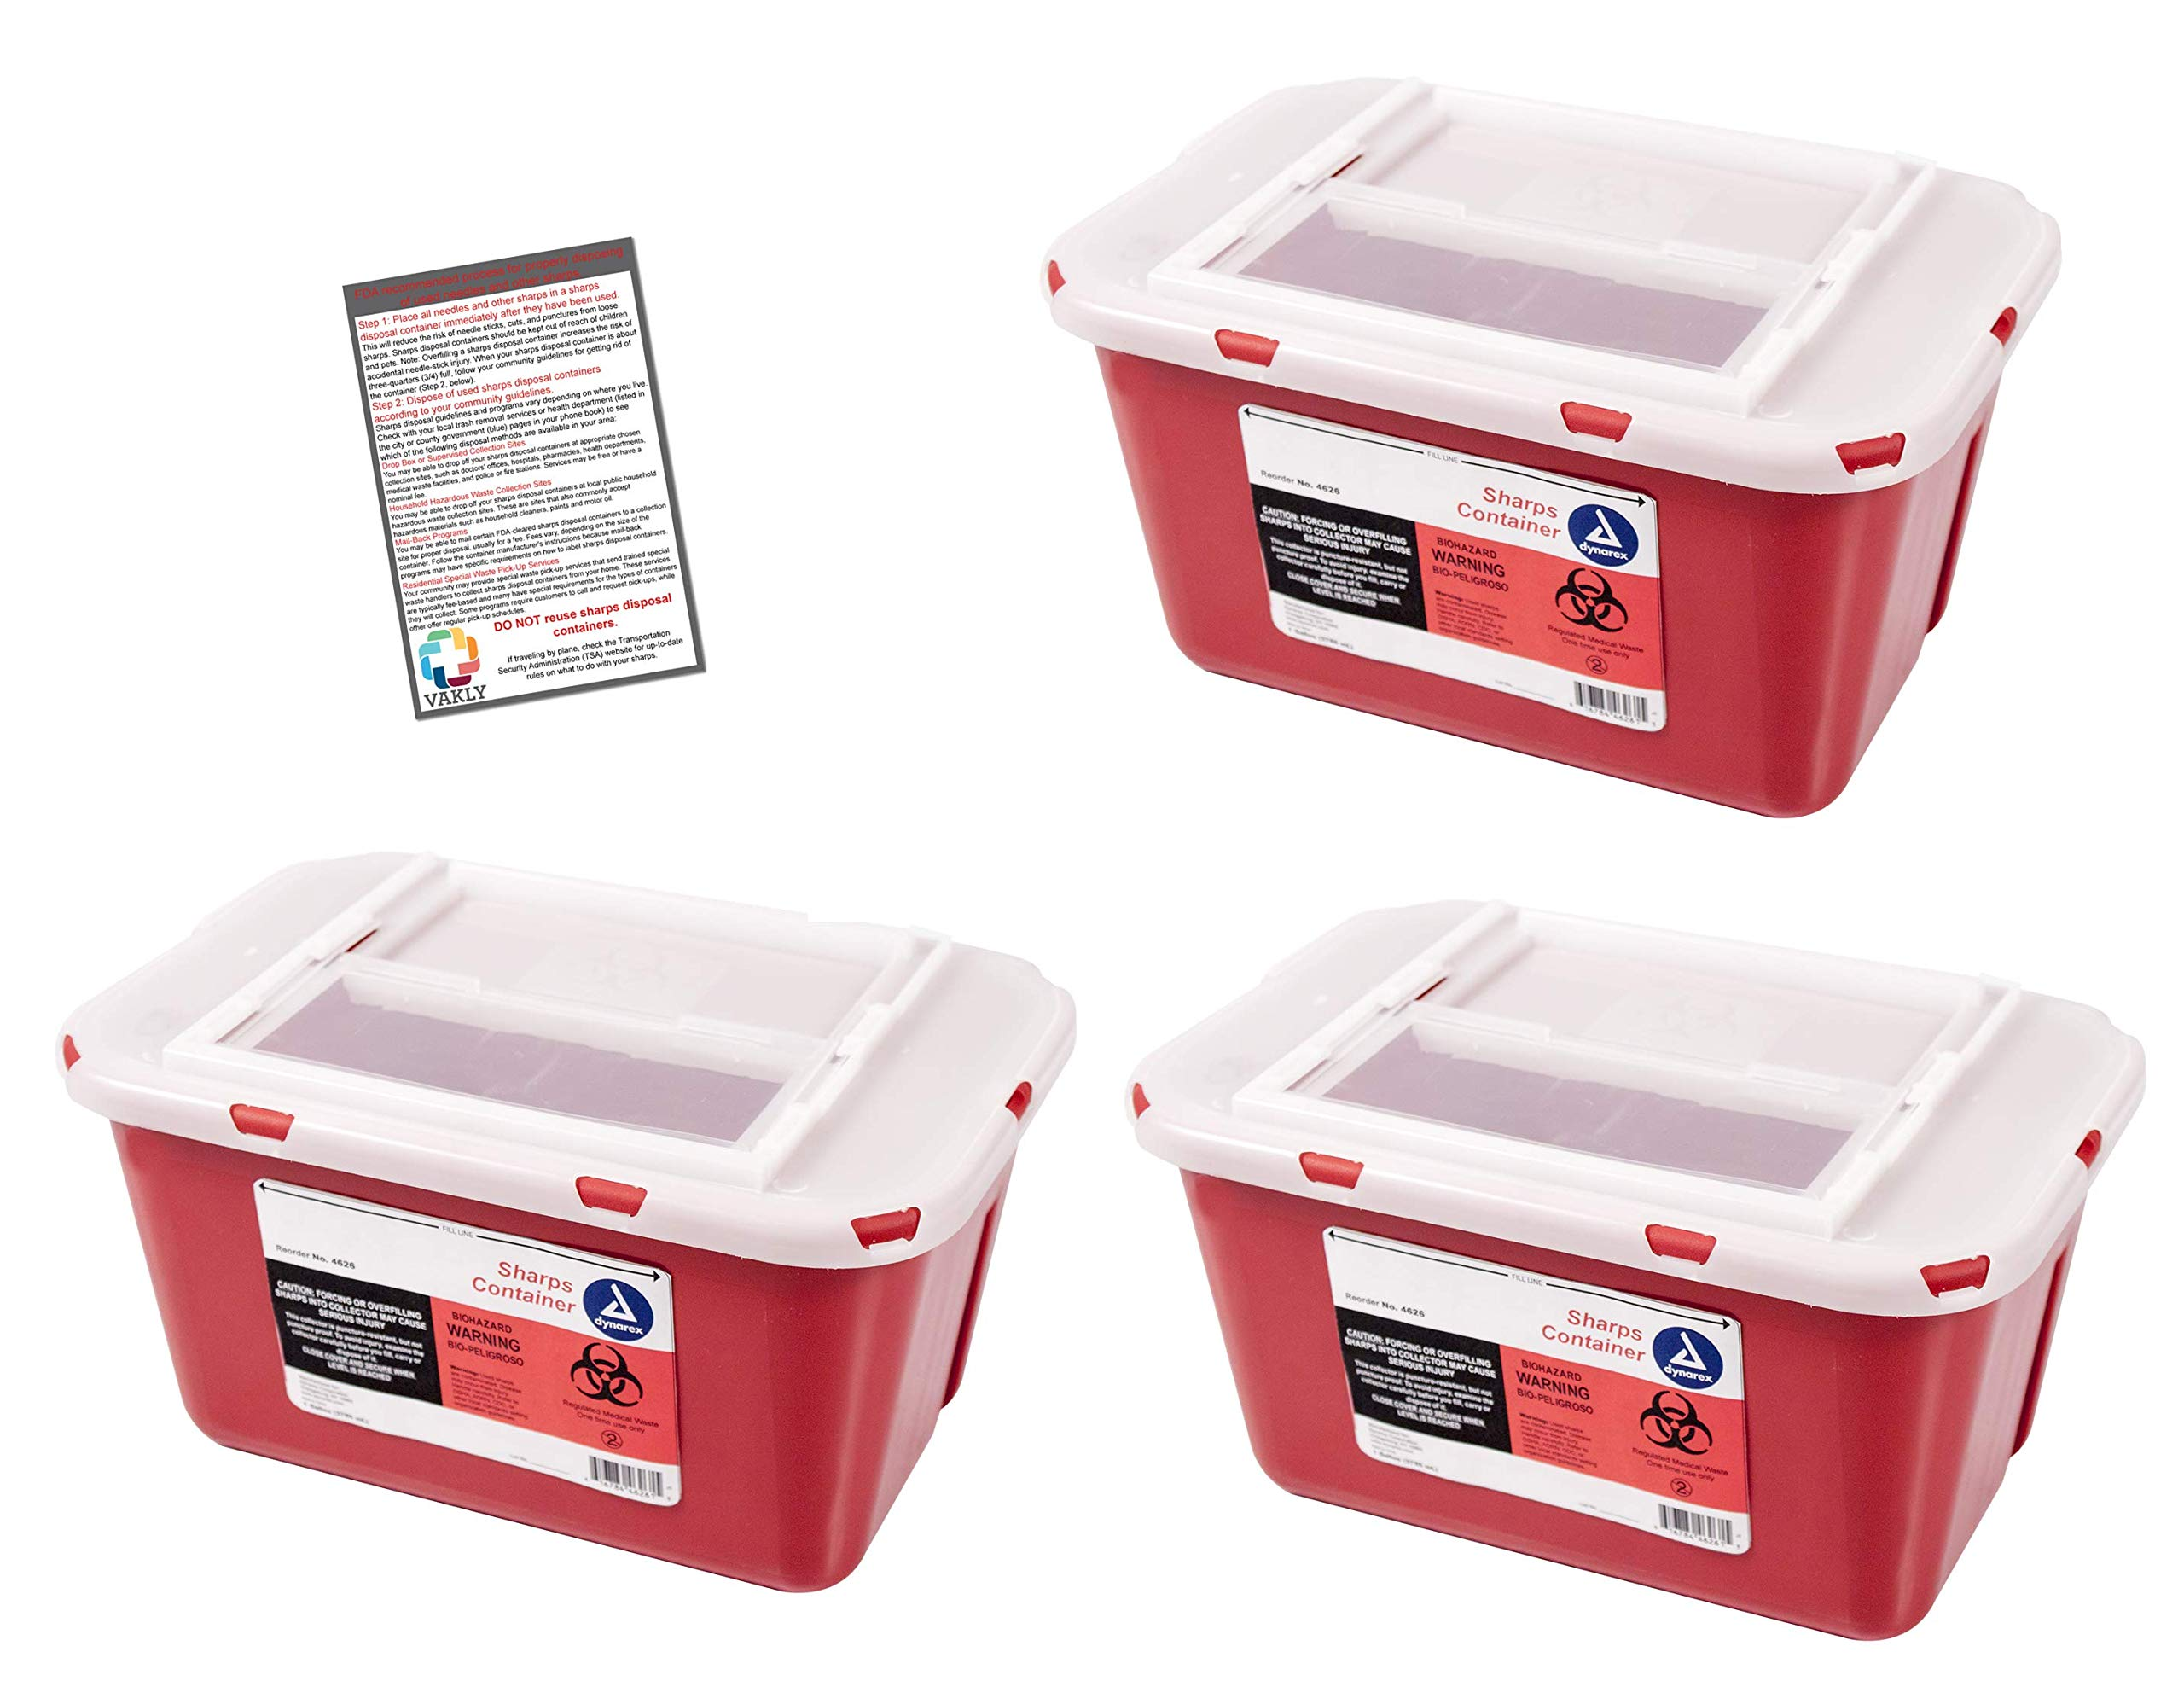 Sharps Container 1 Gallon - Plus Vakly Biohazard Disposal Guide (3 Pack) by Vakly (Image #1)